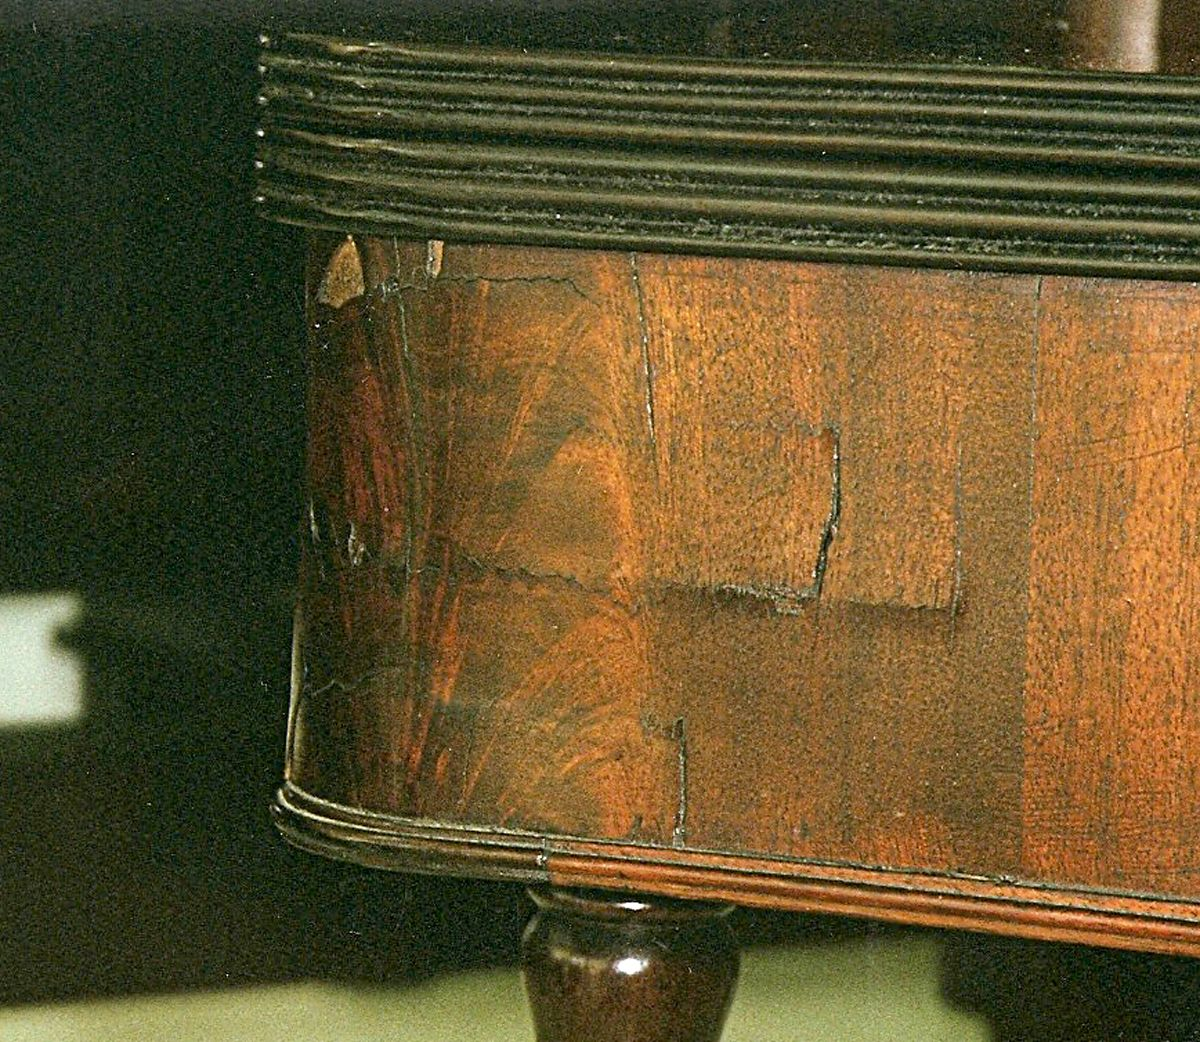 Wood Shrinkage In Antique Furniture Is To Be Expected By Fred Taylor,  Www.furnituredetective.com